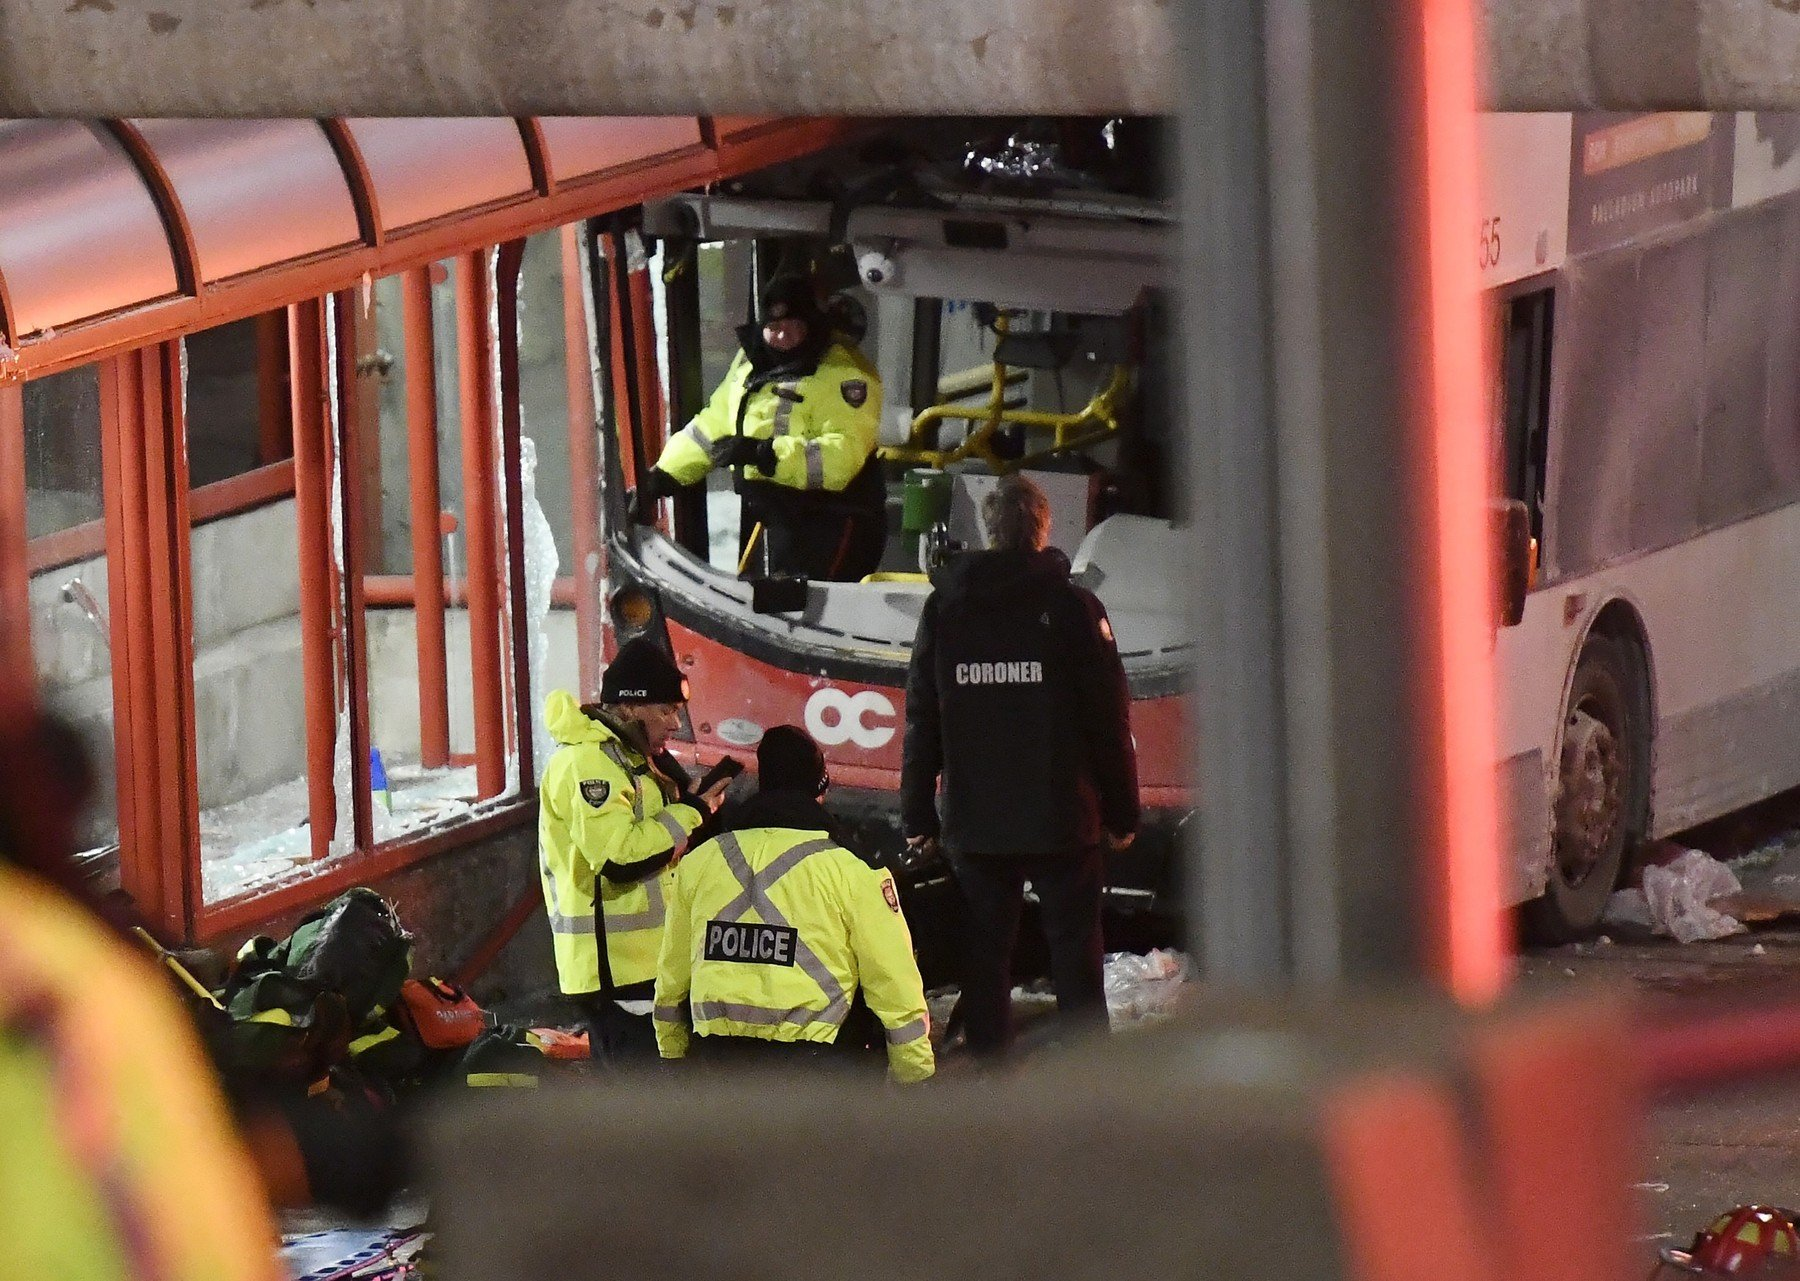 January 11, 2019 - Ottawa, on, Canada - Police and a first responders work at the scene where a double-decker city bus struck a transit shelter in Ottawa, on Friday, Jan. 11, 2019., Image: 406719632, License: Rights-managed, Restrictions: * Canada and U.S. RIGHTS OUT *, Model Release: no, Credit line: Profimedia, Zuma Press - News